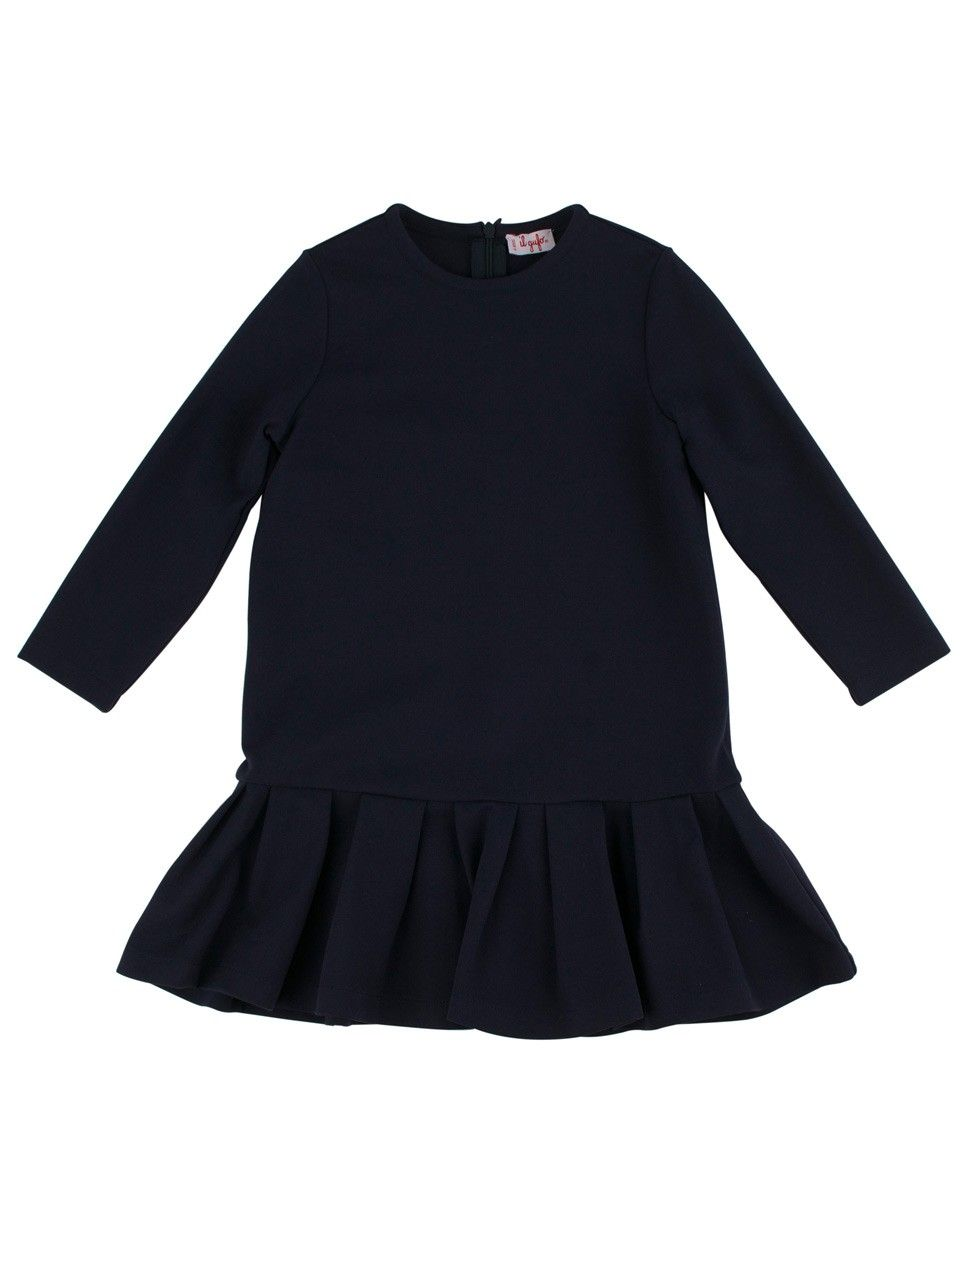 98badb5c65e78 Jersey dress in navy blue with pleated skirt from Il Gufo | little ...